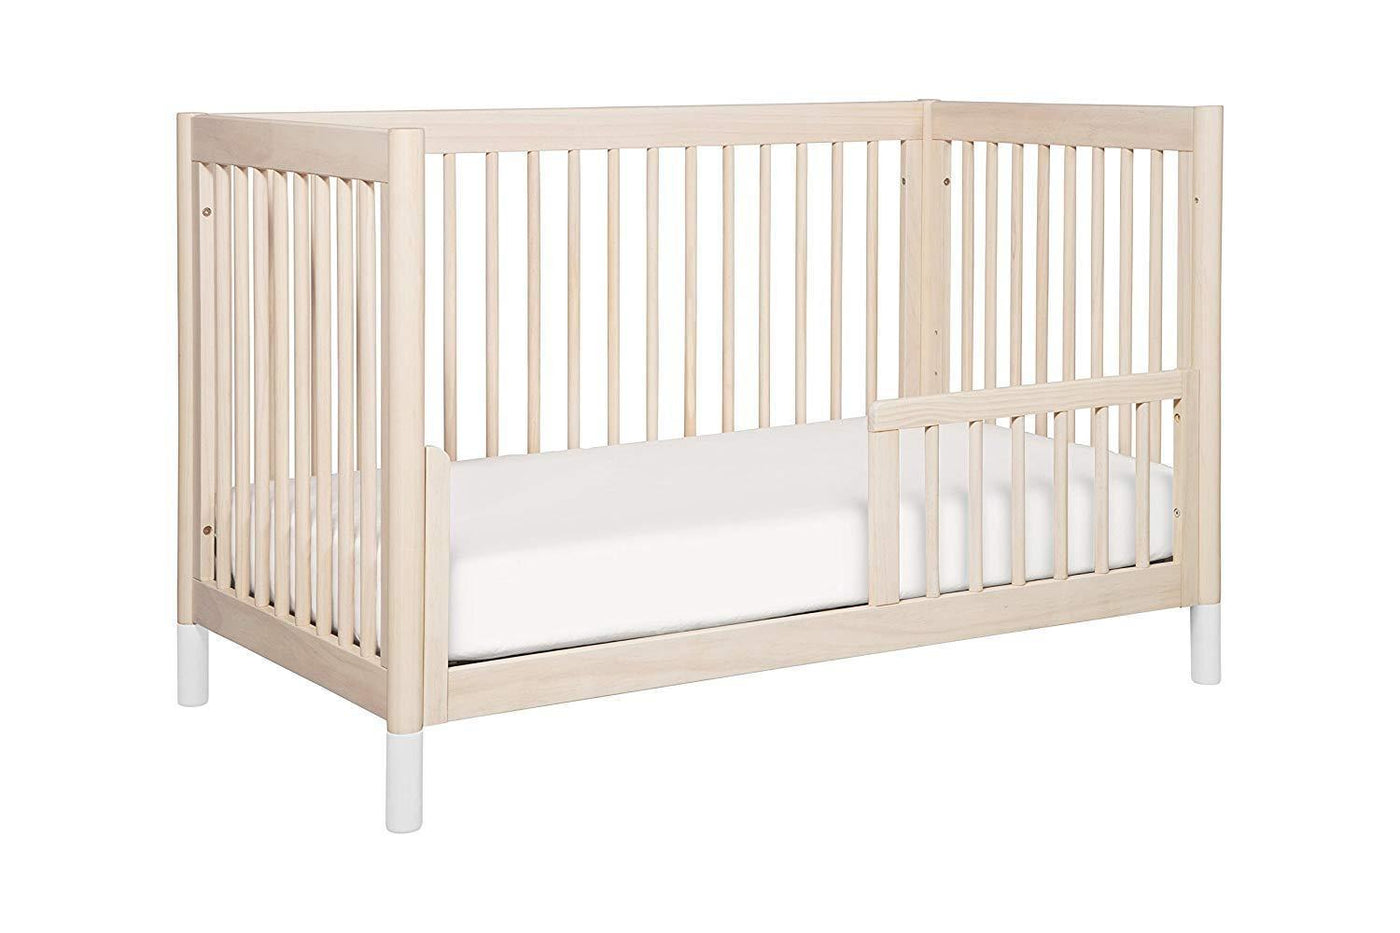 Babyletto Gelato 4 In 1 Convertible Crib With Toddler Bed Conversion K Juvenile Shop